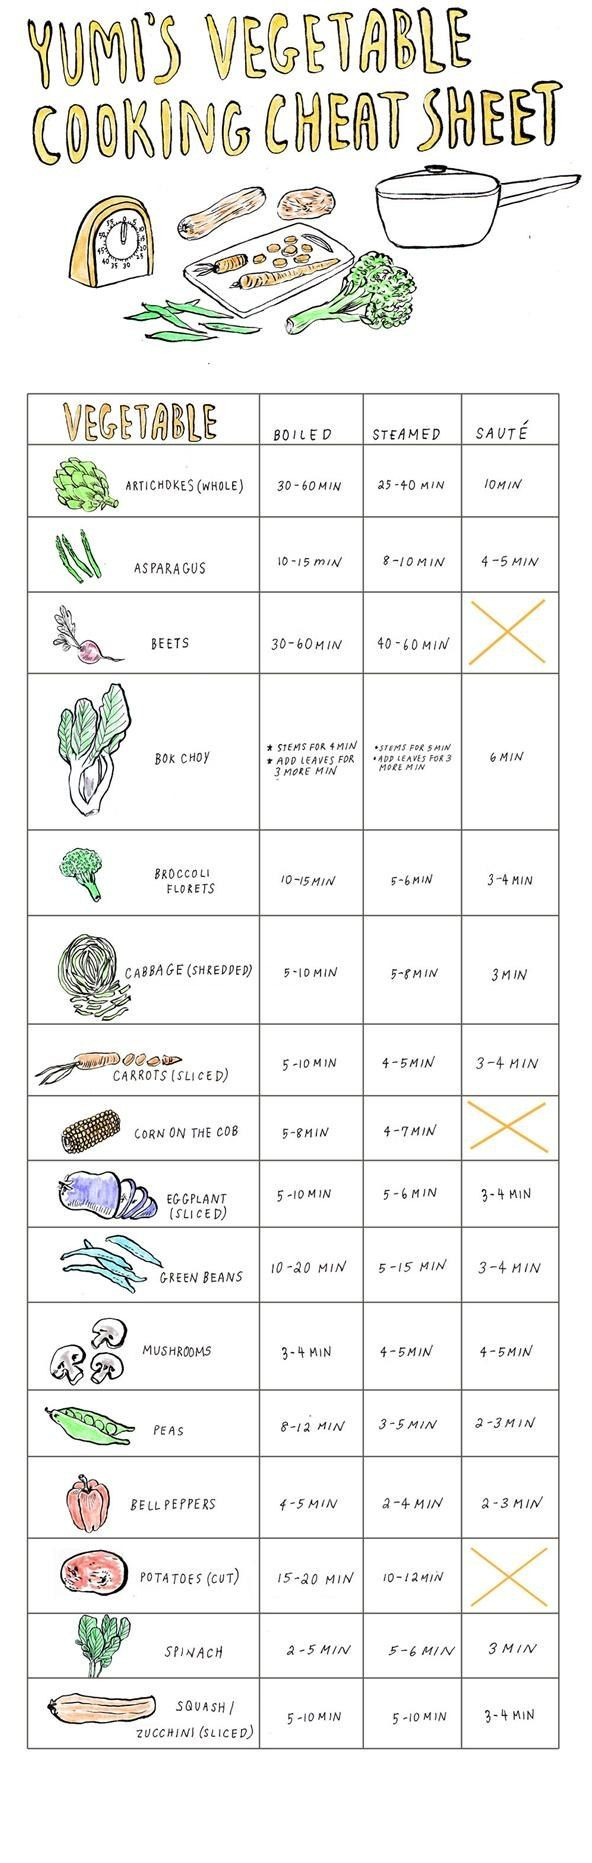 Photo of Yumi's Vegetable Cooking Cheat Sheet